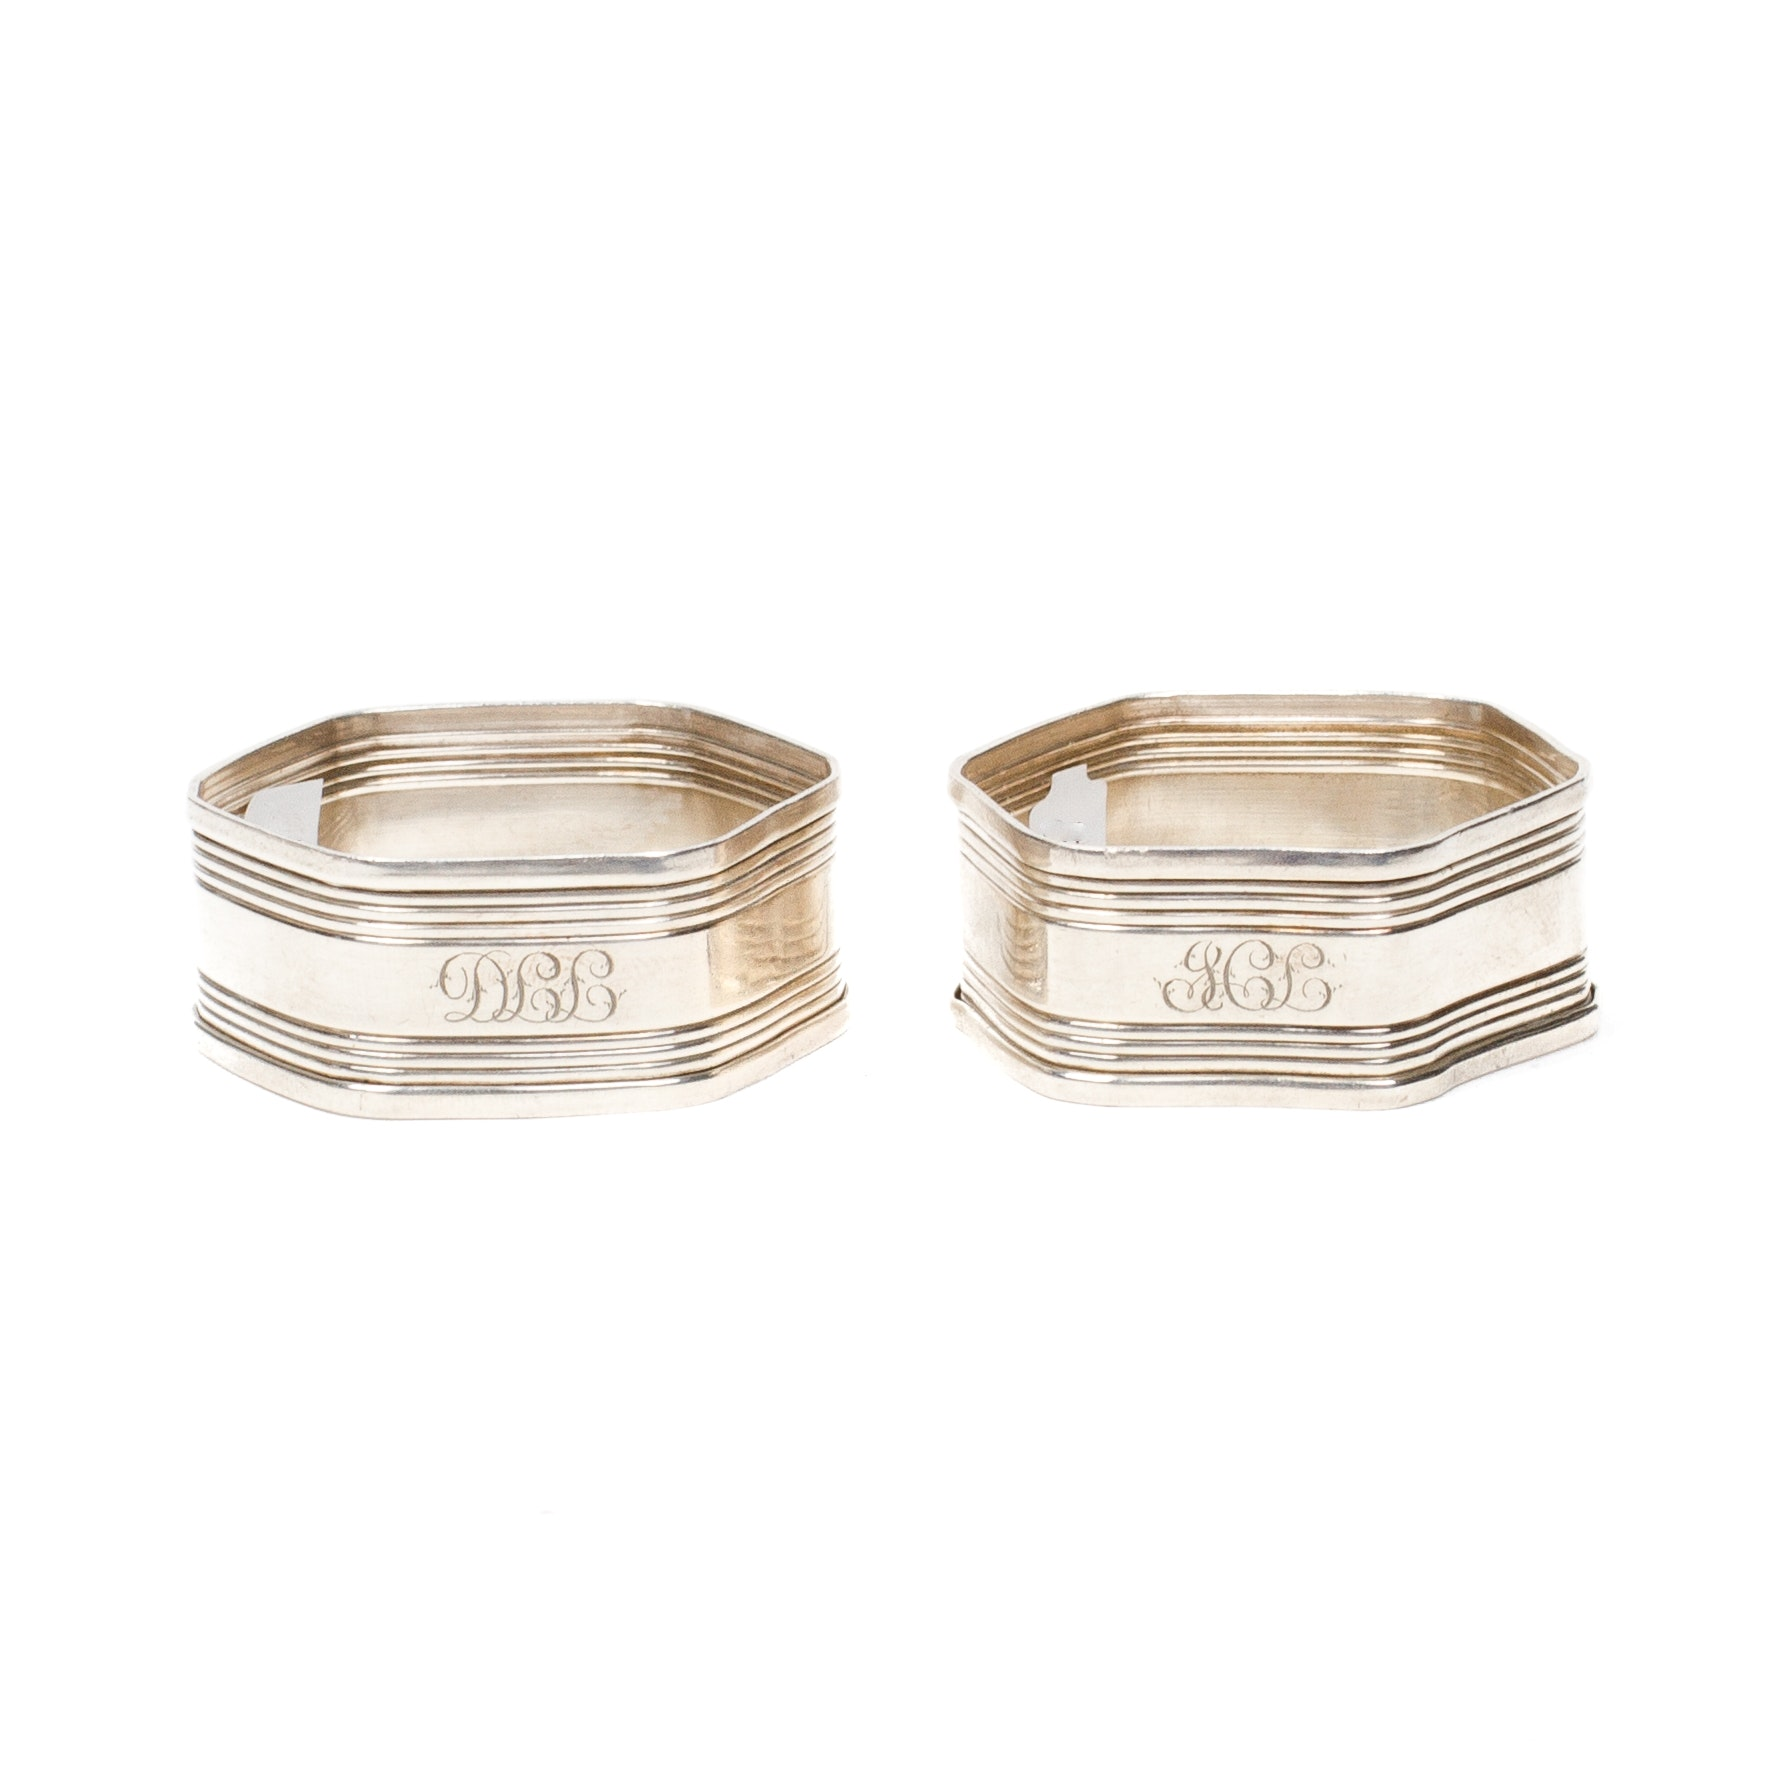 Pair of Sterling Silver Napkin Rings